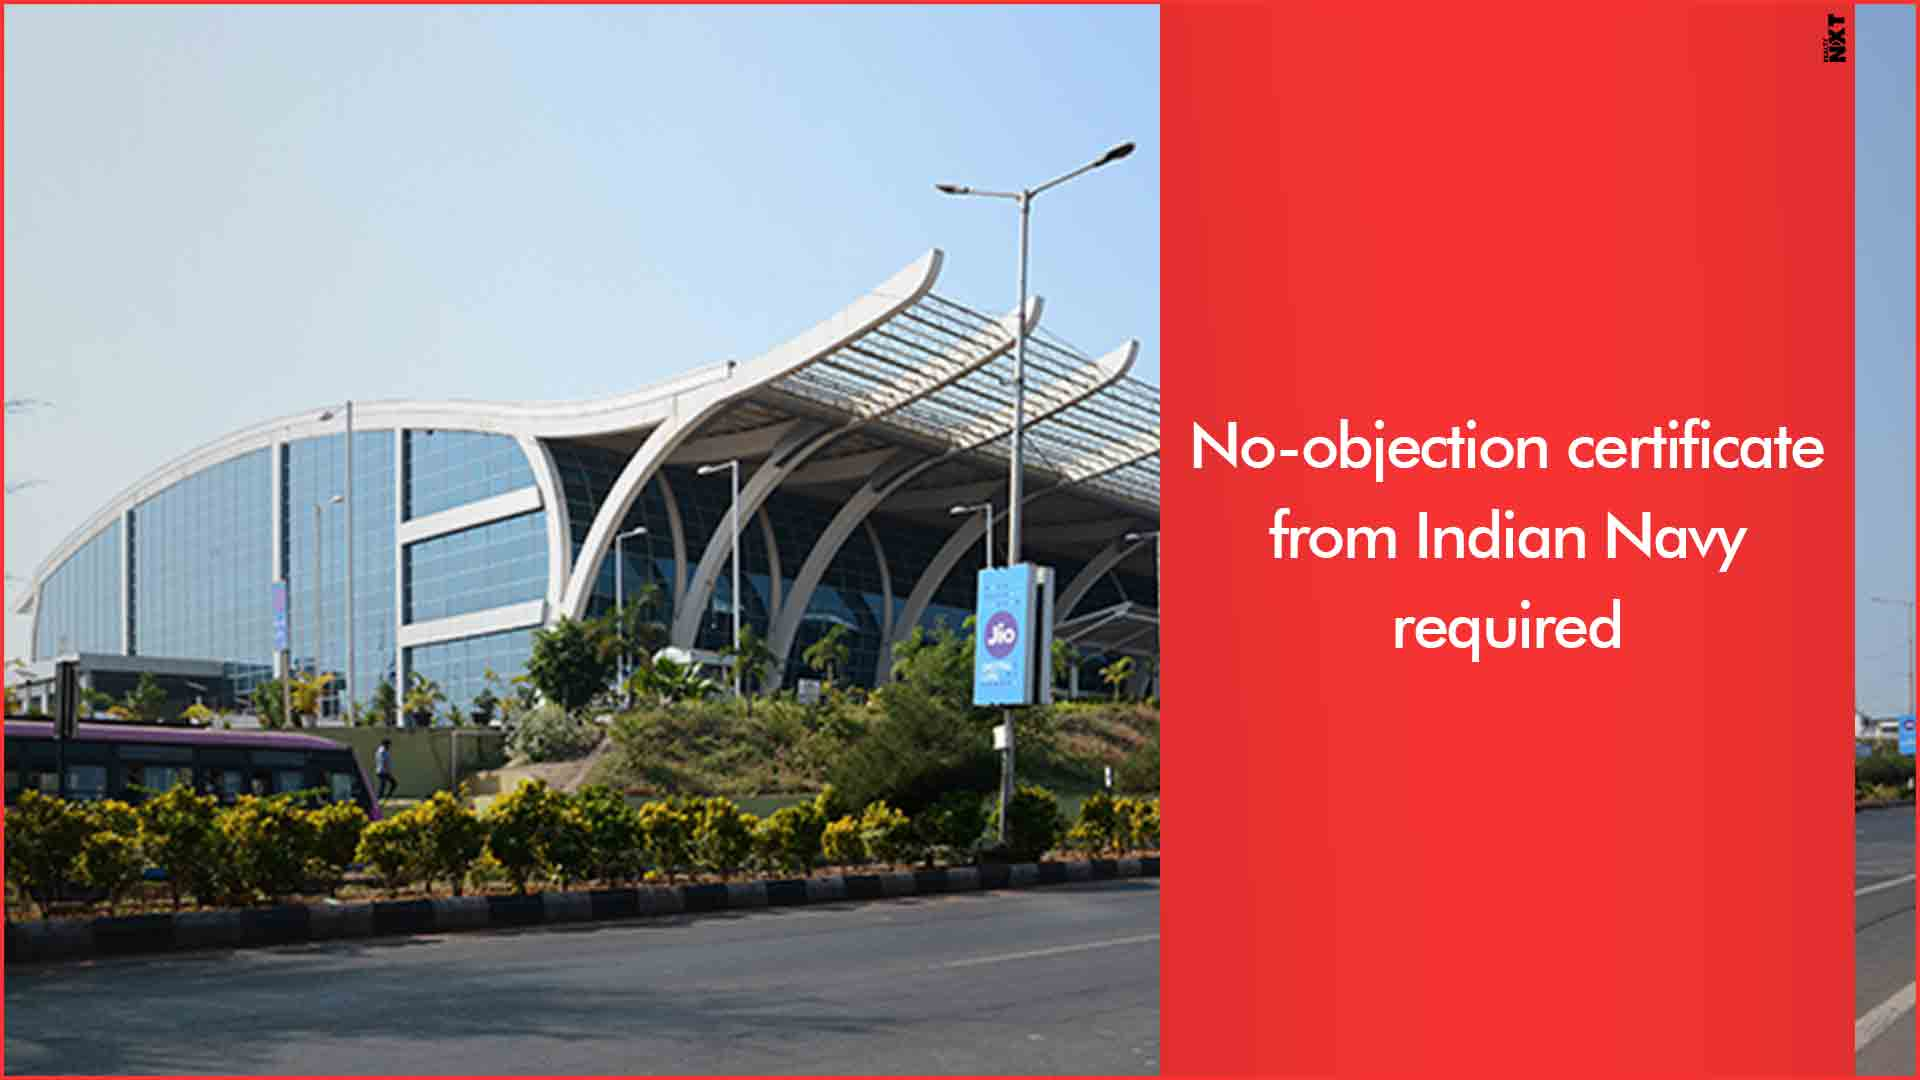 Construction projects near Goa Airport have to obtain a height clearance no-objection certificate from the Indian Navy